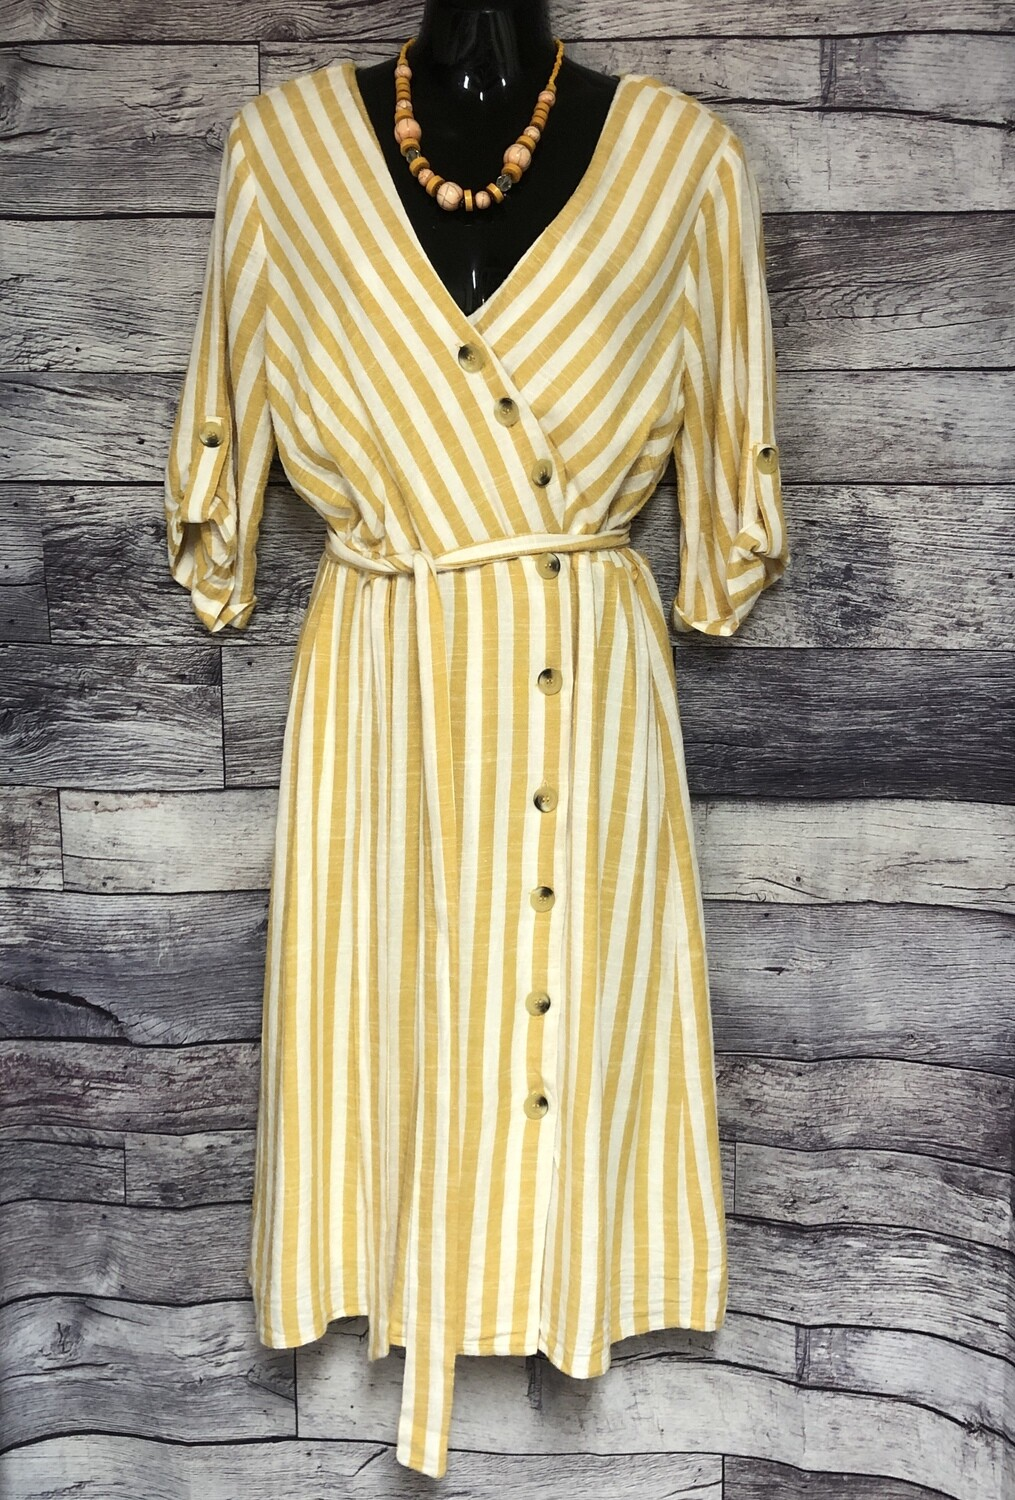 LILY BLACK Mustard & Cream Linen Angled Button Front Dress size Medium